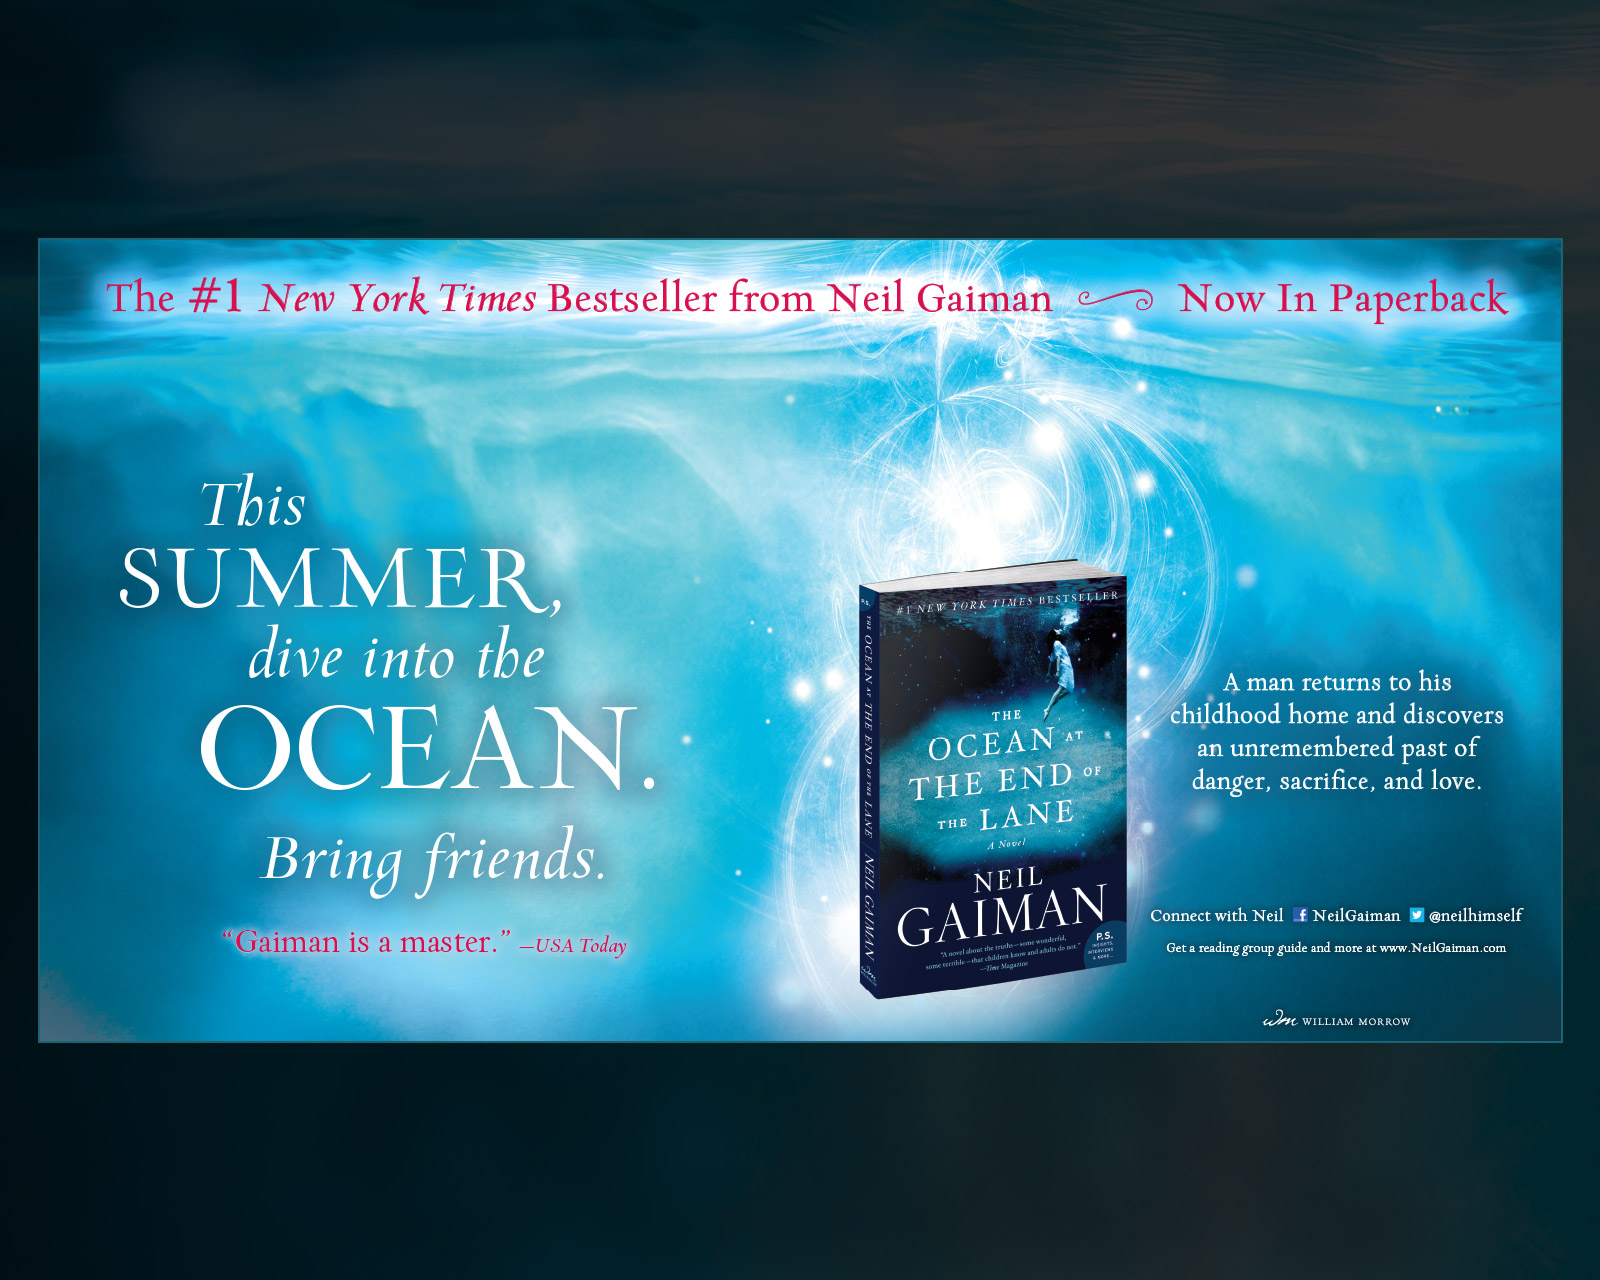 Neil Gaiman - The Ocean at the End of the Lane - New York Times Book Review Full Page Center Spread Ad